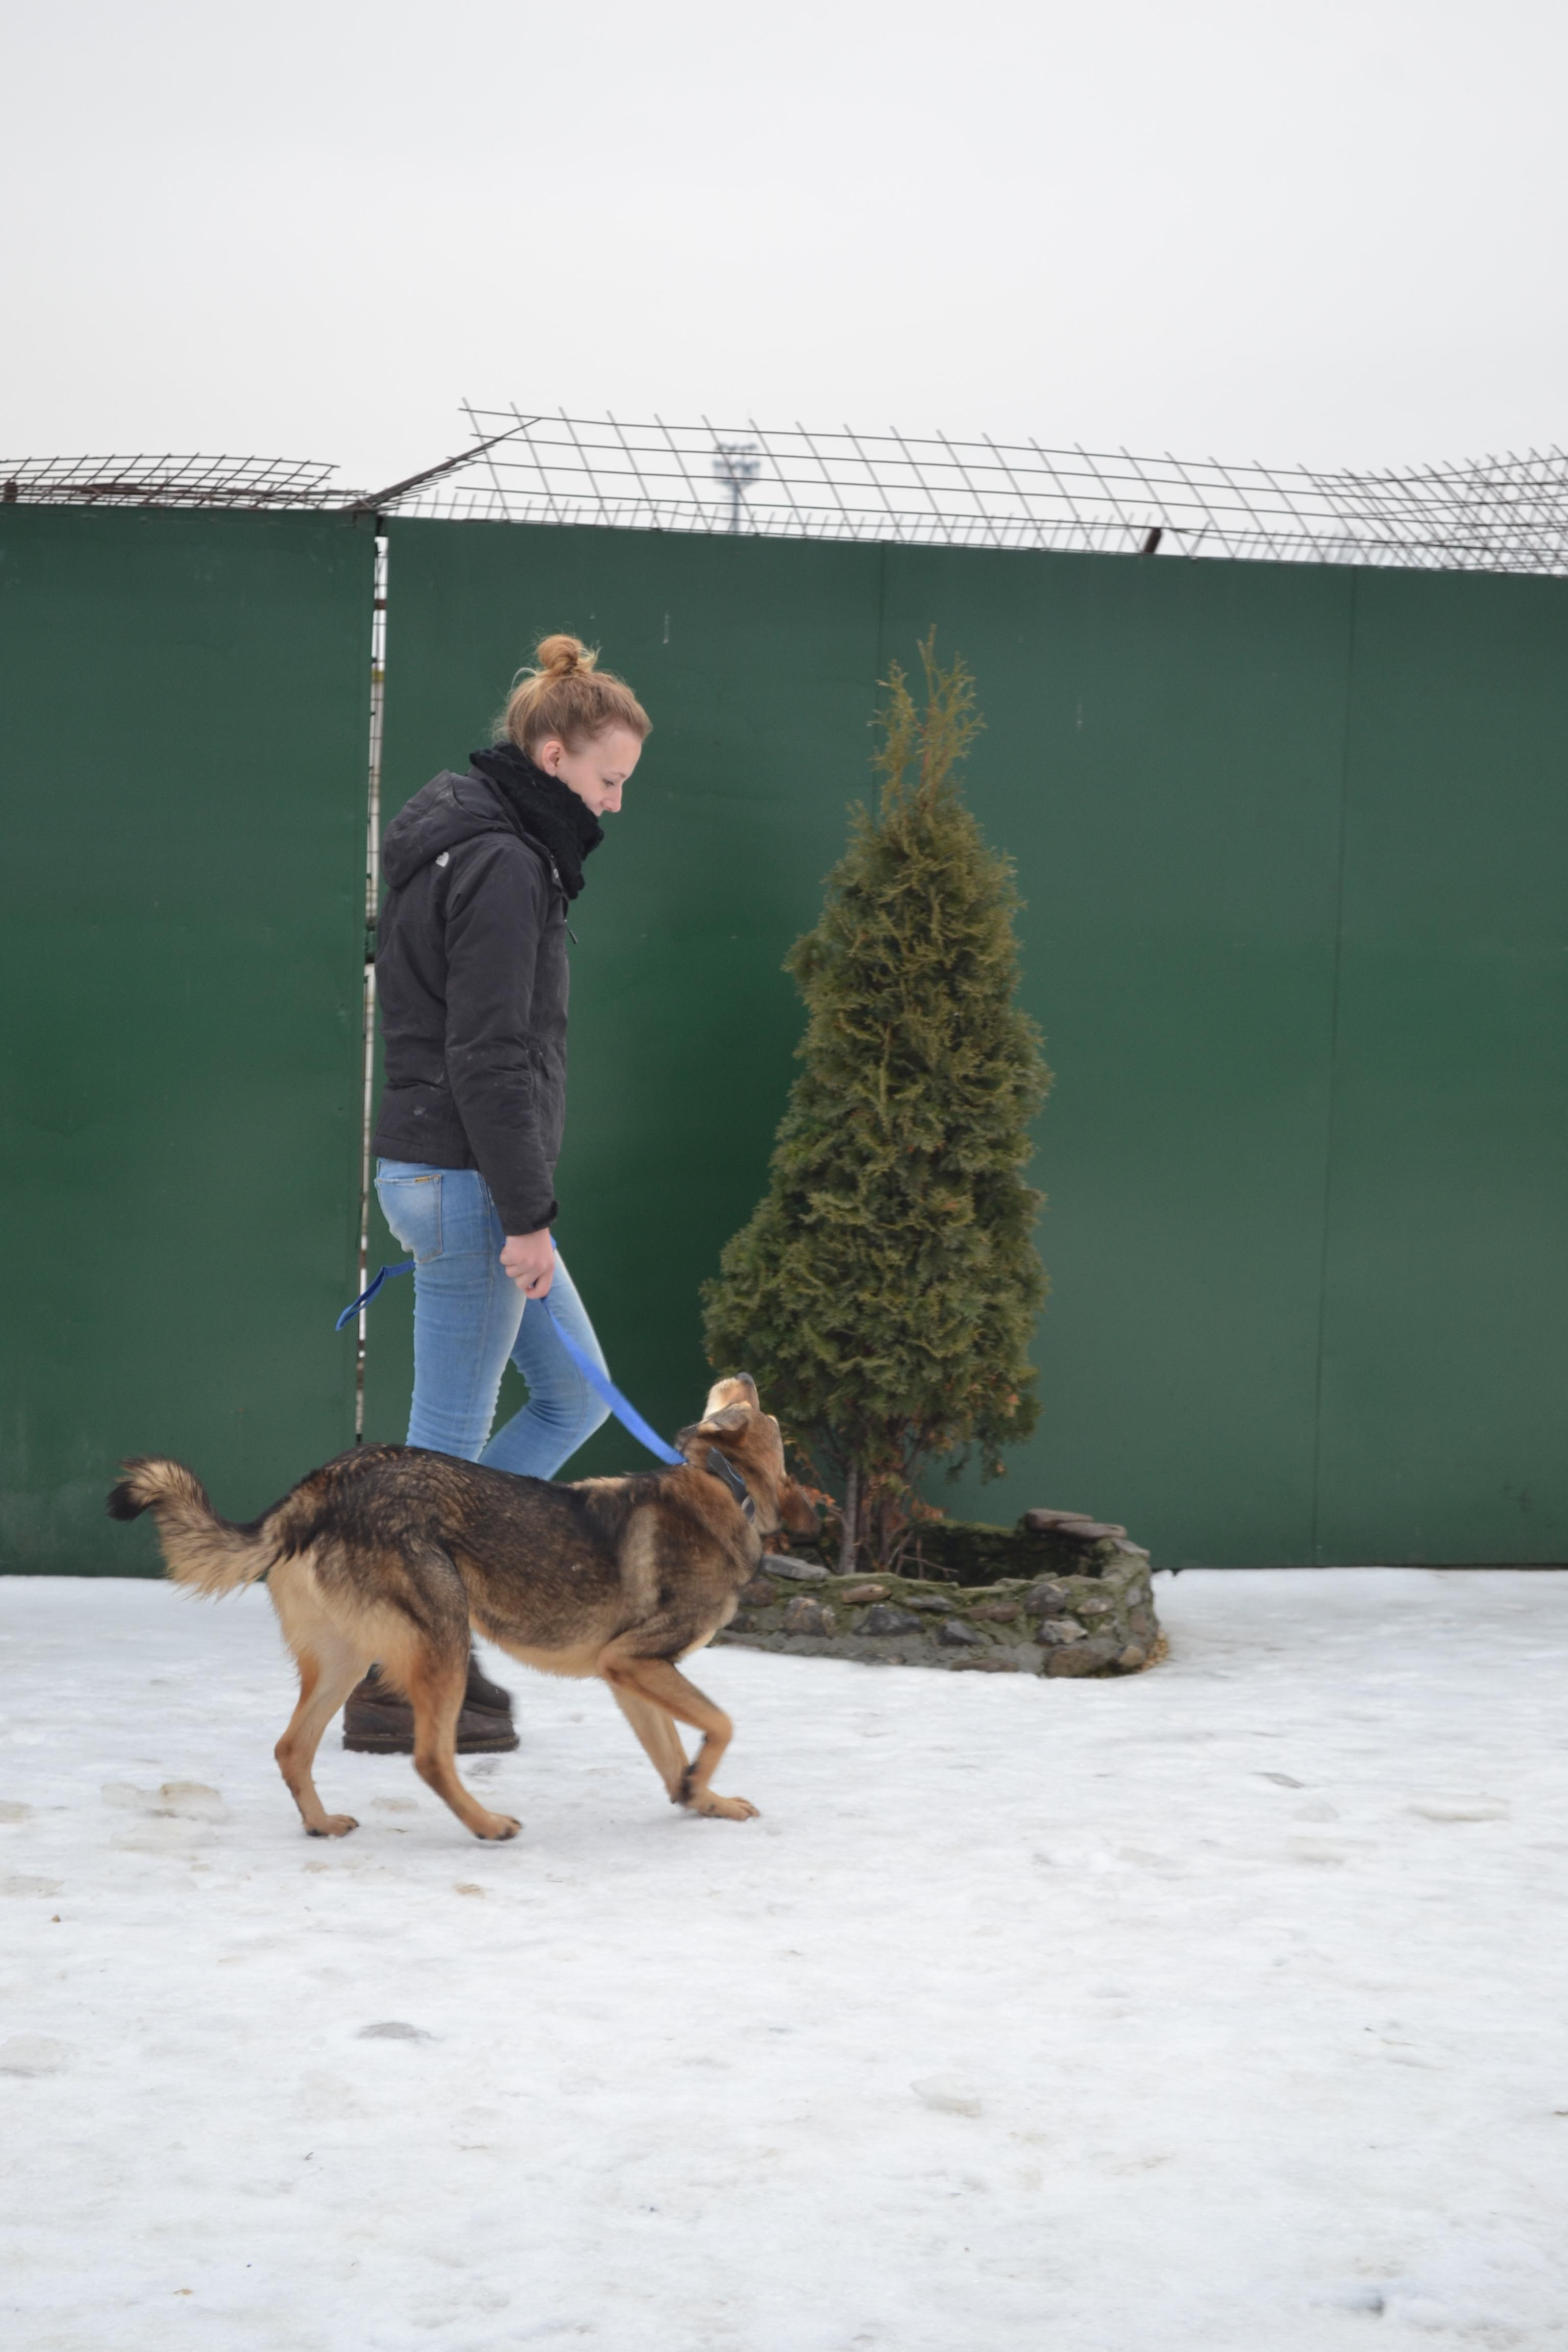 A volunteer working with animals in Romania, takes a dog out for daily exercise.